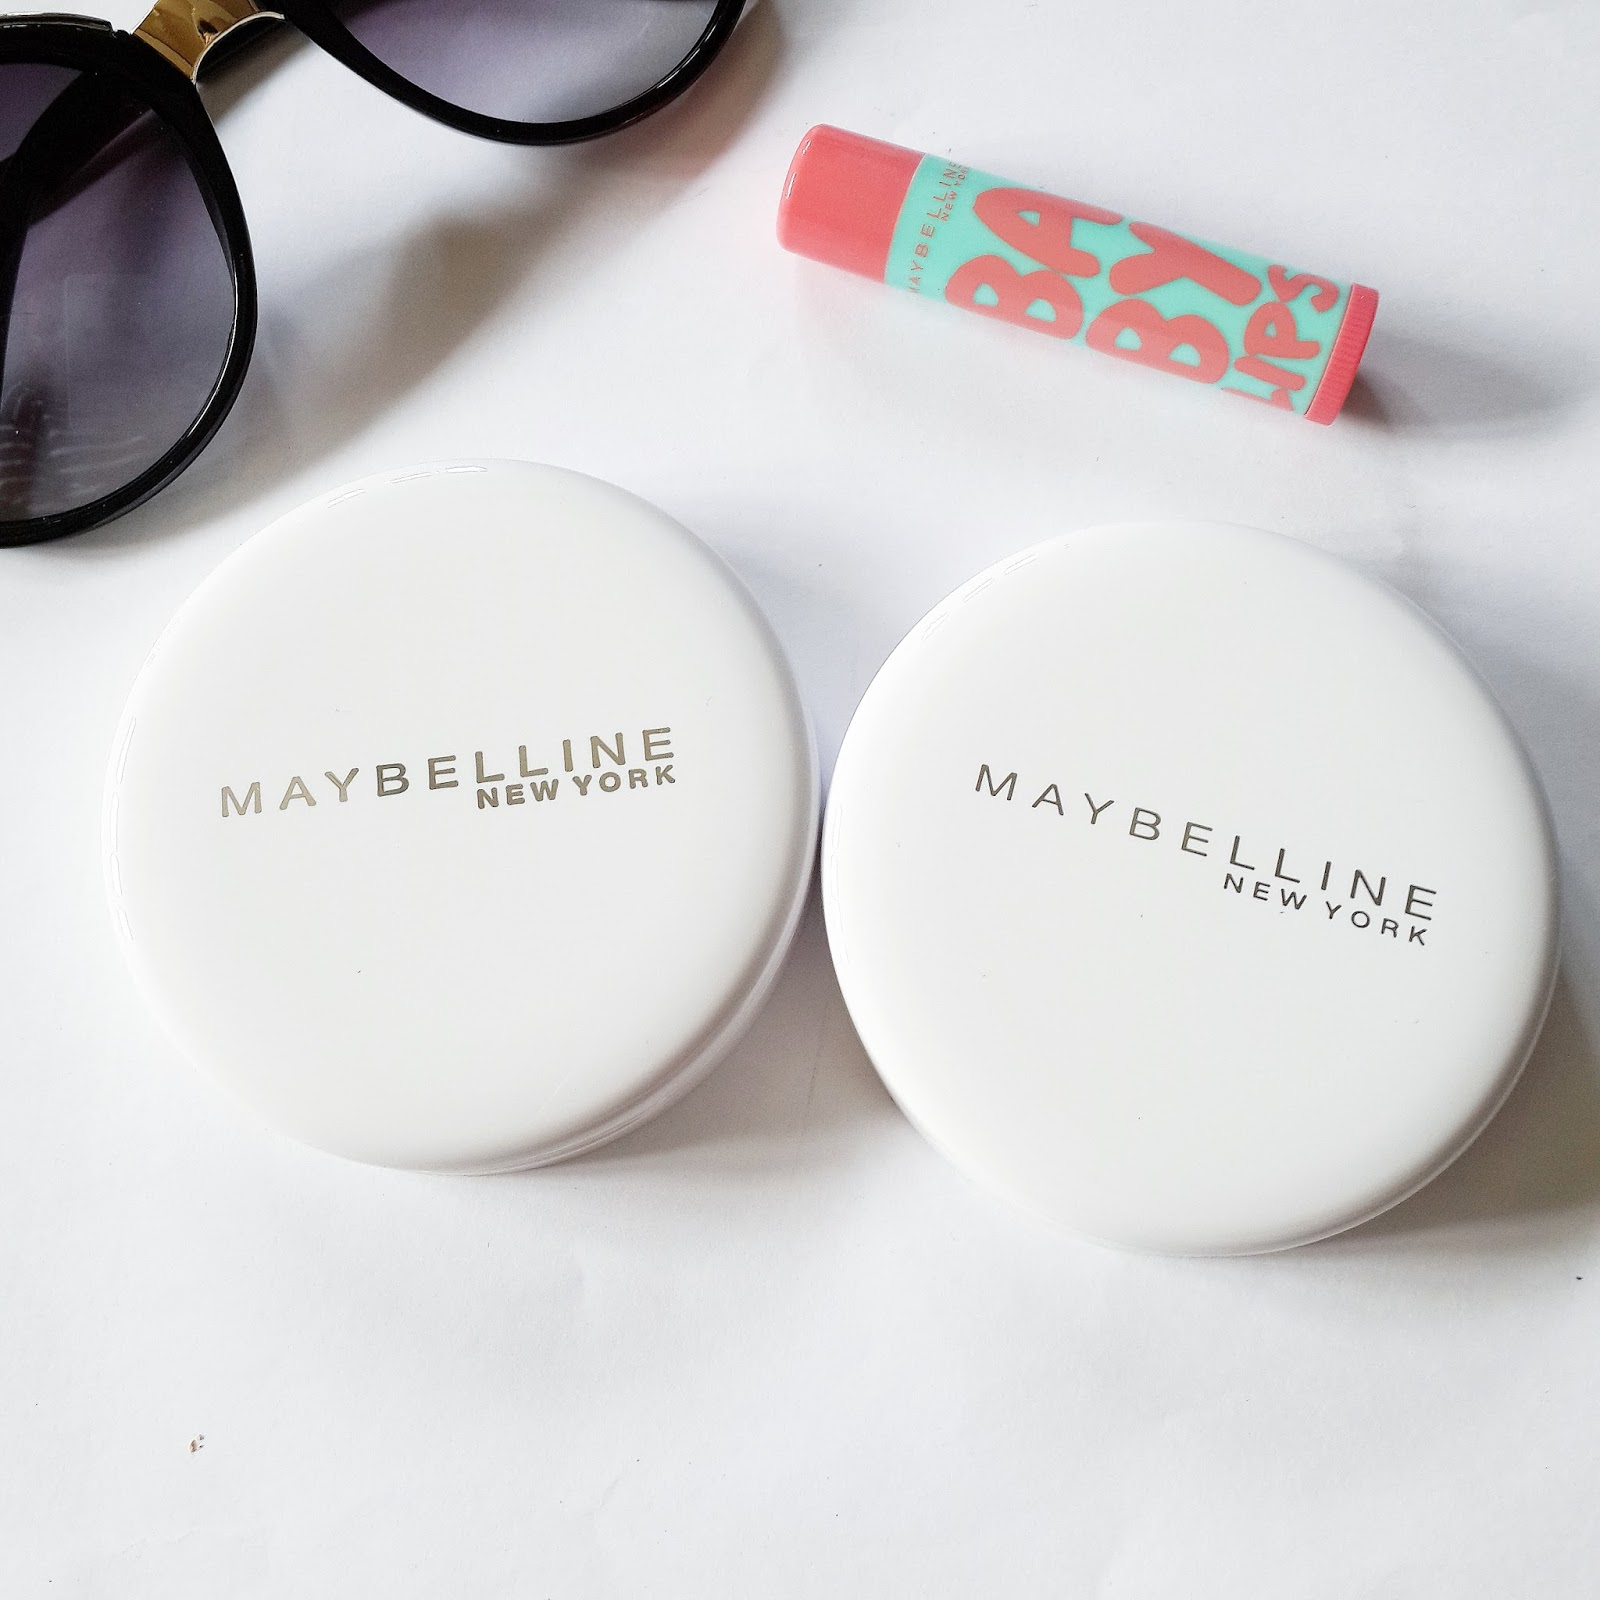 Ridzi Makeup Compact Maybelline Two Cake Bedak 2 Pcs The Case Is Round In Shape Completely White Color With Written Over It Has Got Mirror On One Side A Puff